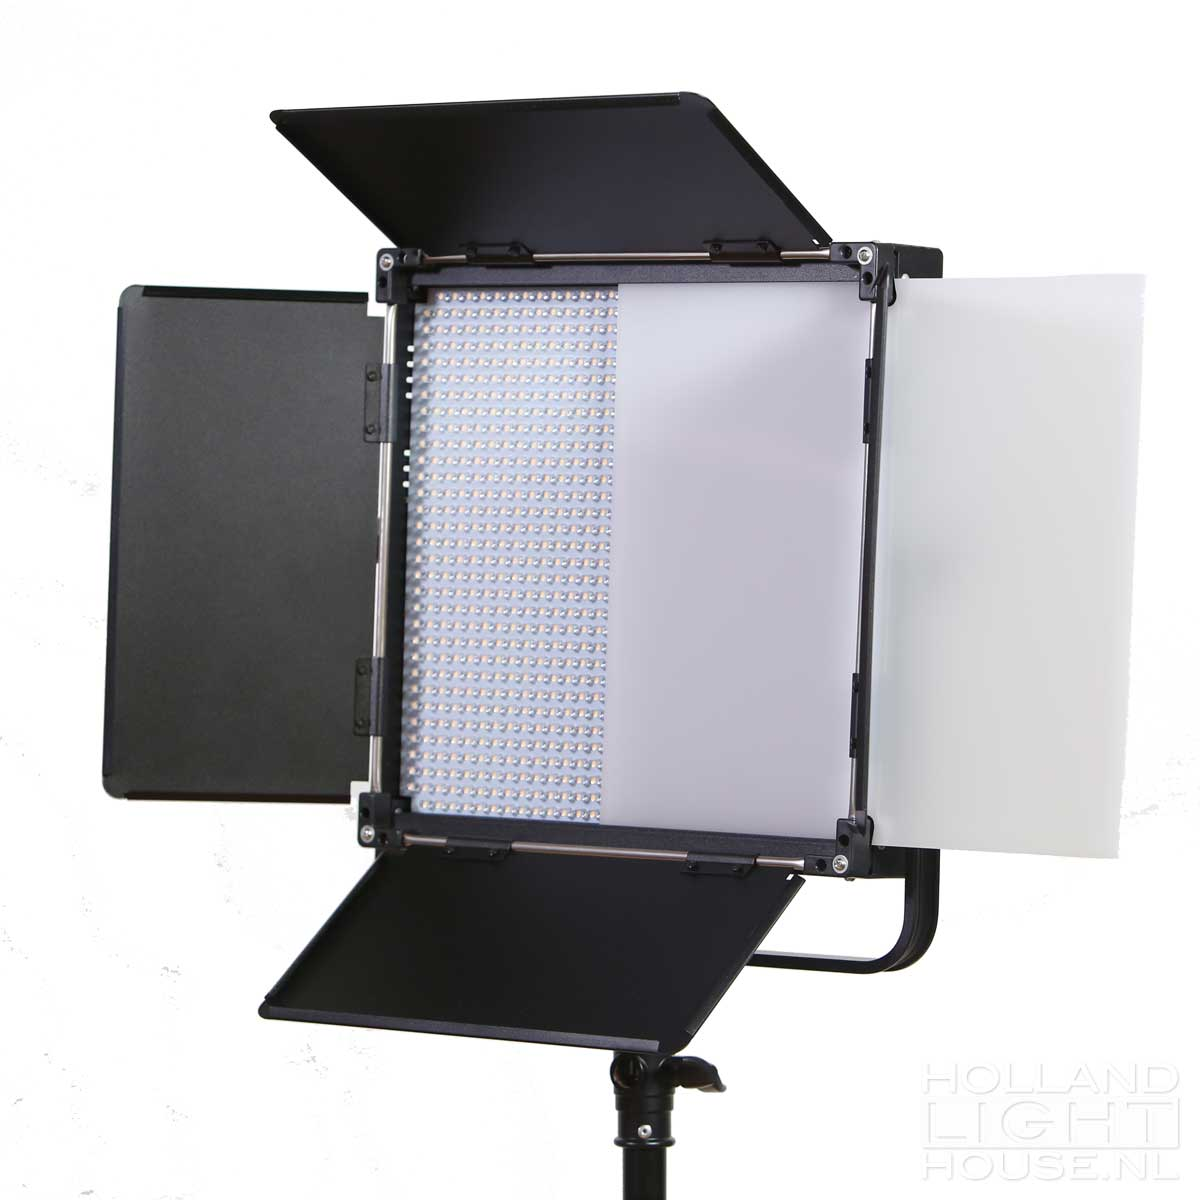 Led Verlichting Met Los Paneel Gl Led1020as Led Video Panel